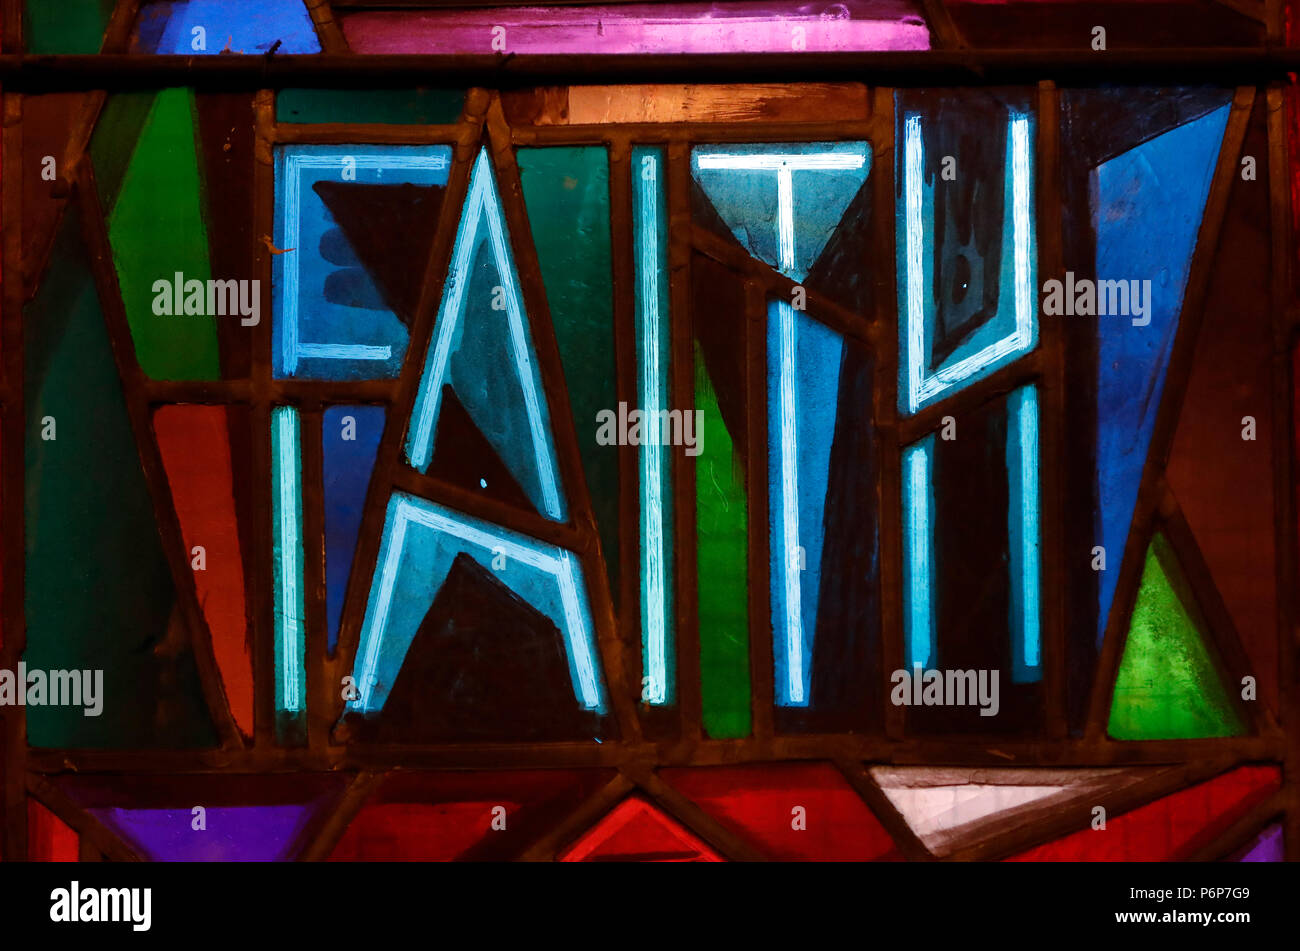 The church of the Holy Trinity.   Stained glass window.  Charity.  Geneva. Switzerland. - Stock Image